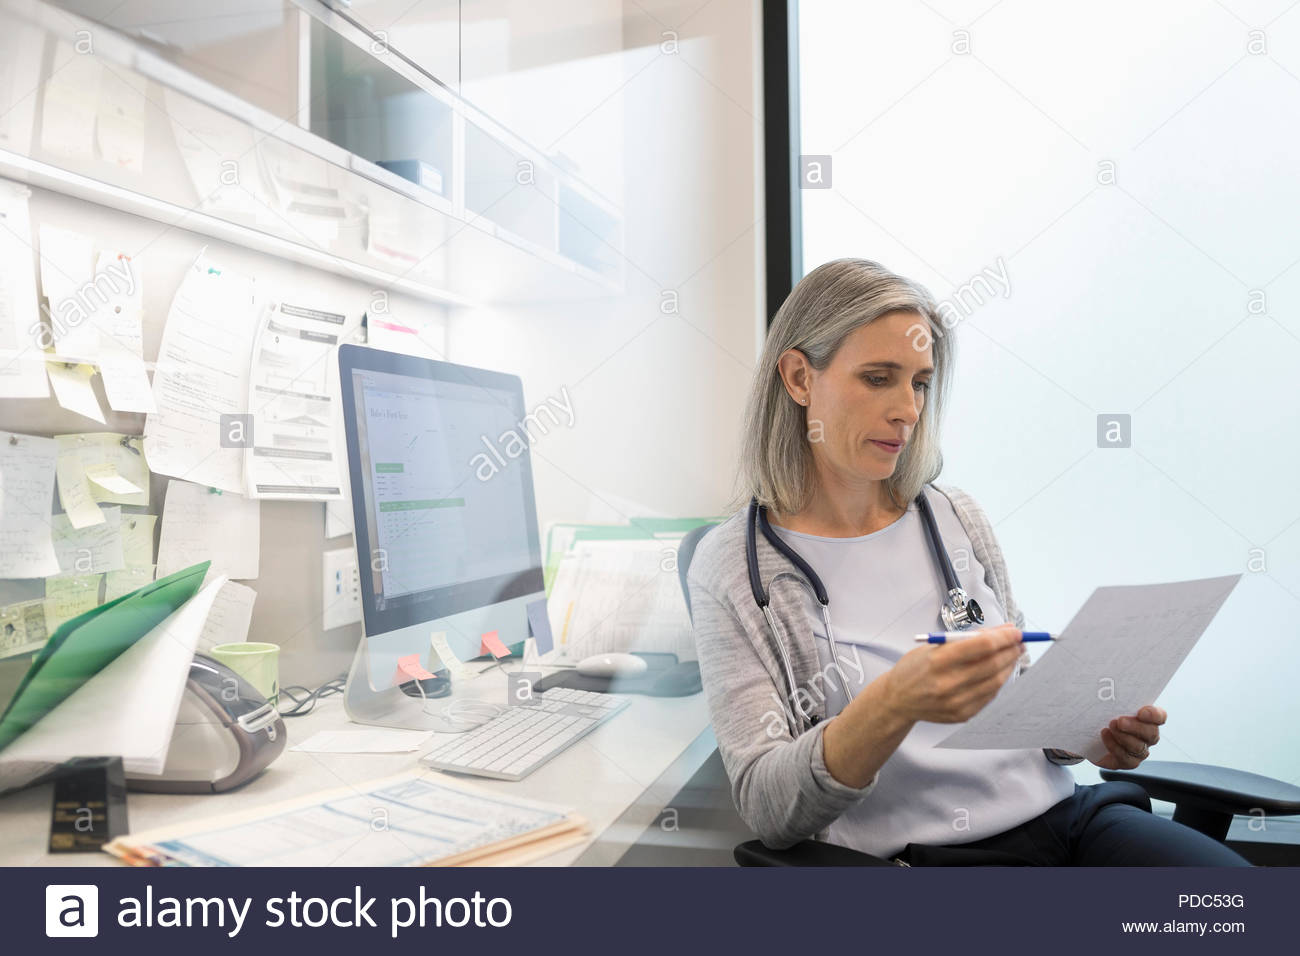 Femme médecin clinique in office Photo Stock